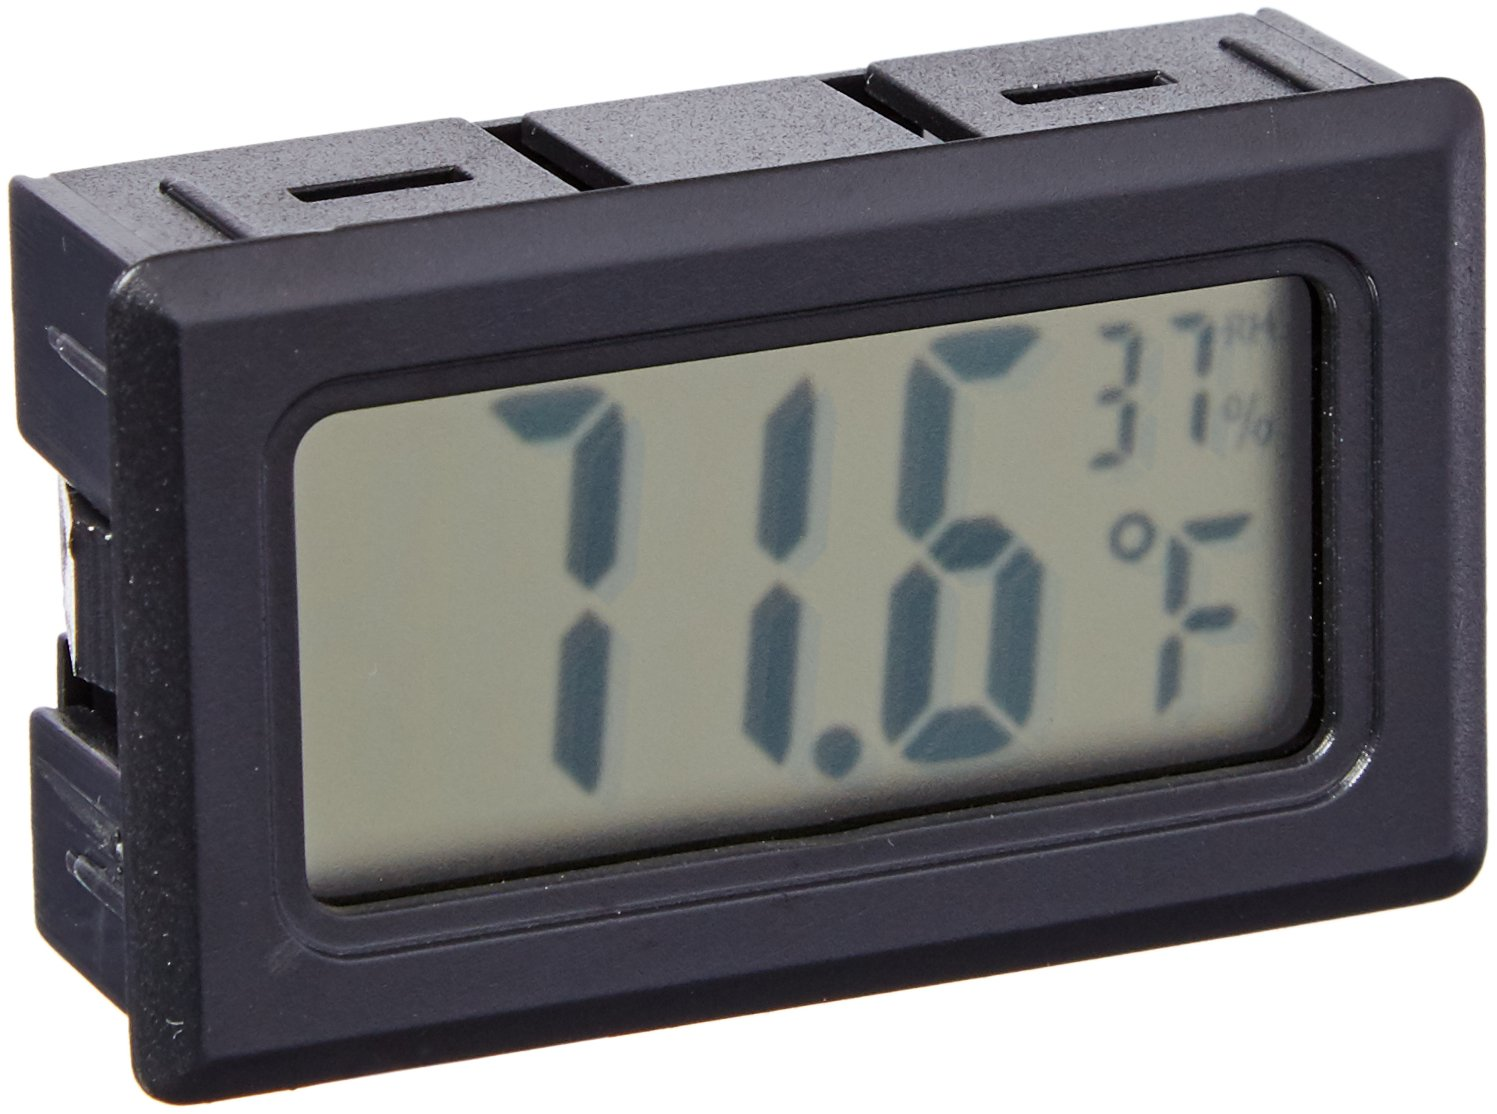 TM Mini Thermo-Hygrometer Avianweb